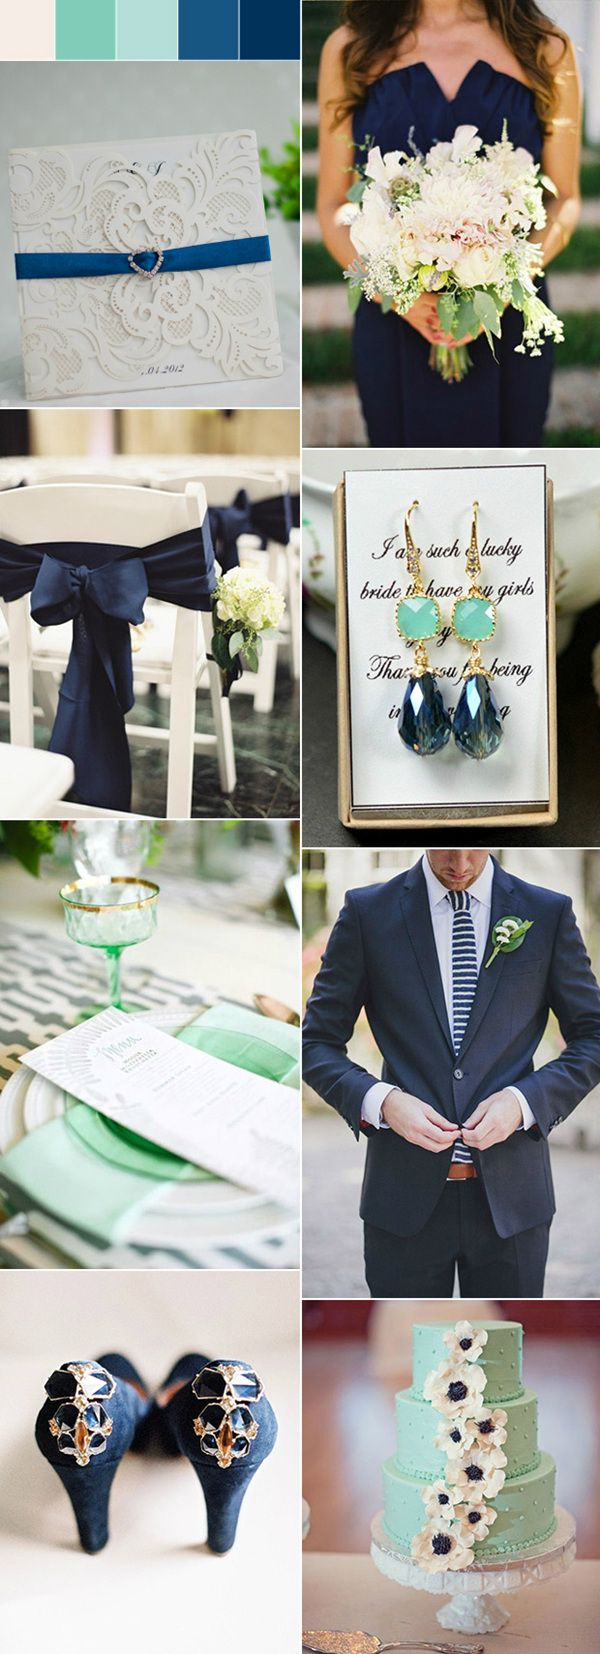 chic fresh mint and navy wedding ideas for spring weddings / http://www.tulleandchantilly.com/blog/41-pretty-navy-blue-wedding-ideas-for-2016/